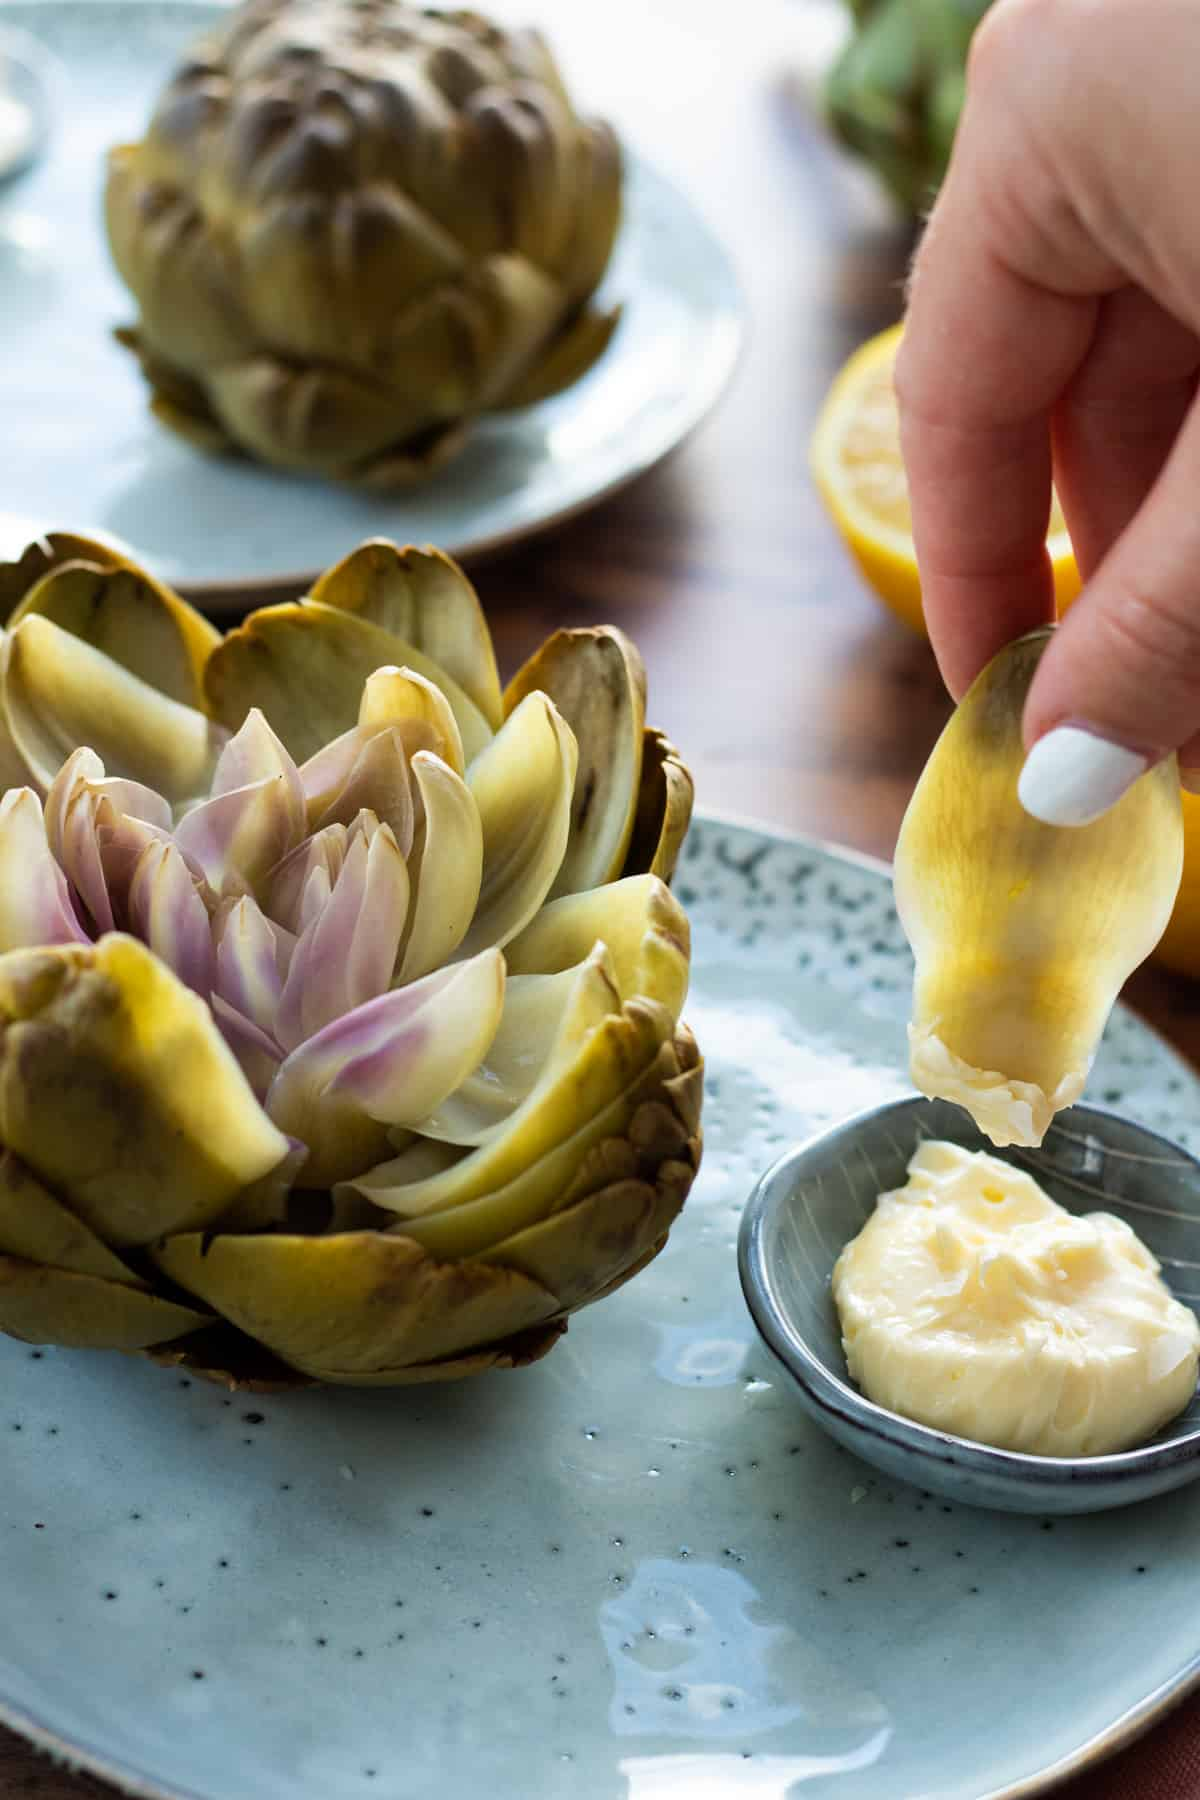 an artichoke leaf being dipped into whipped lemon butter next to a whole artichoke